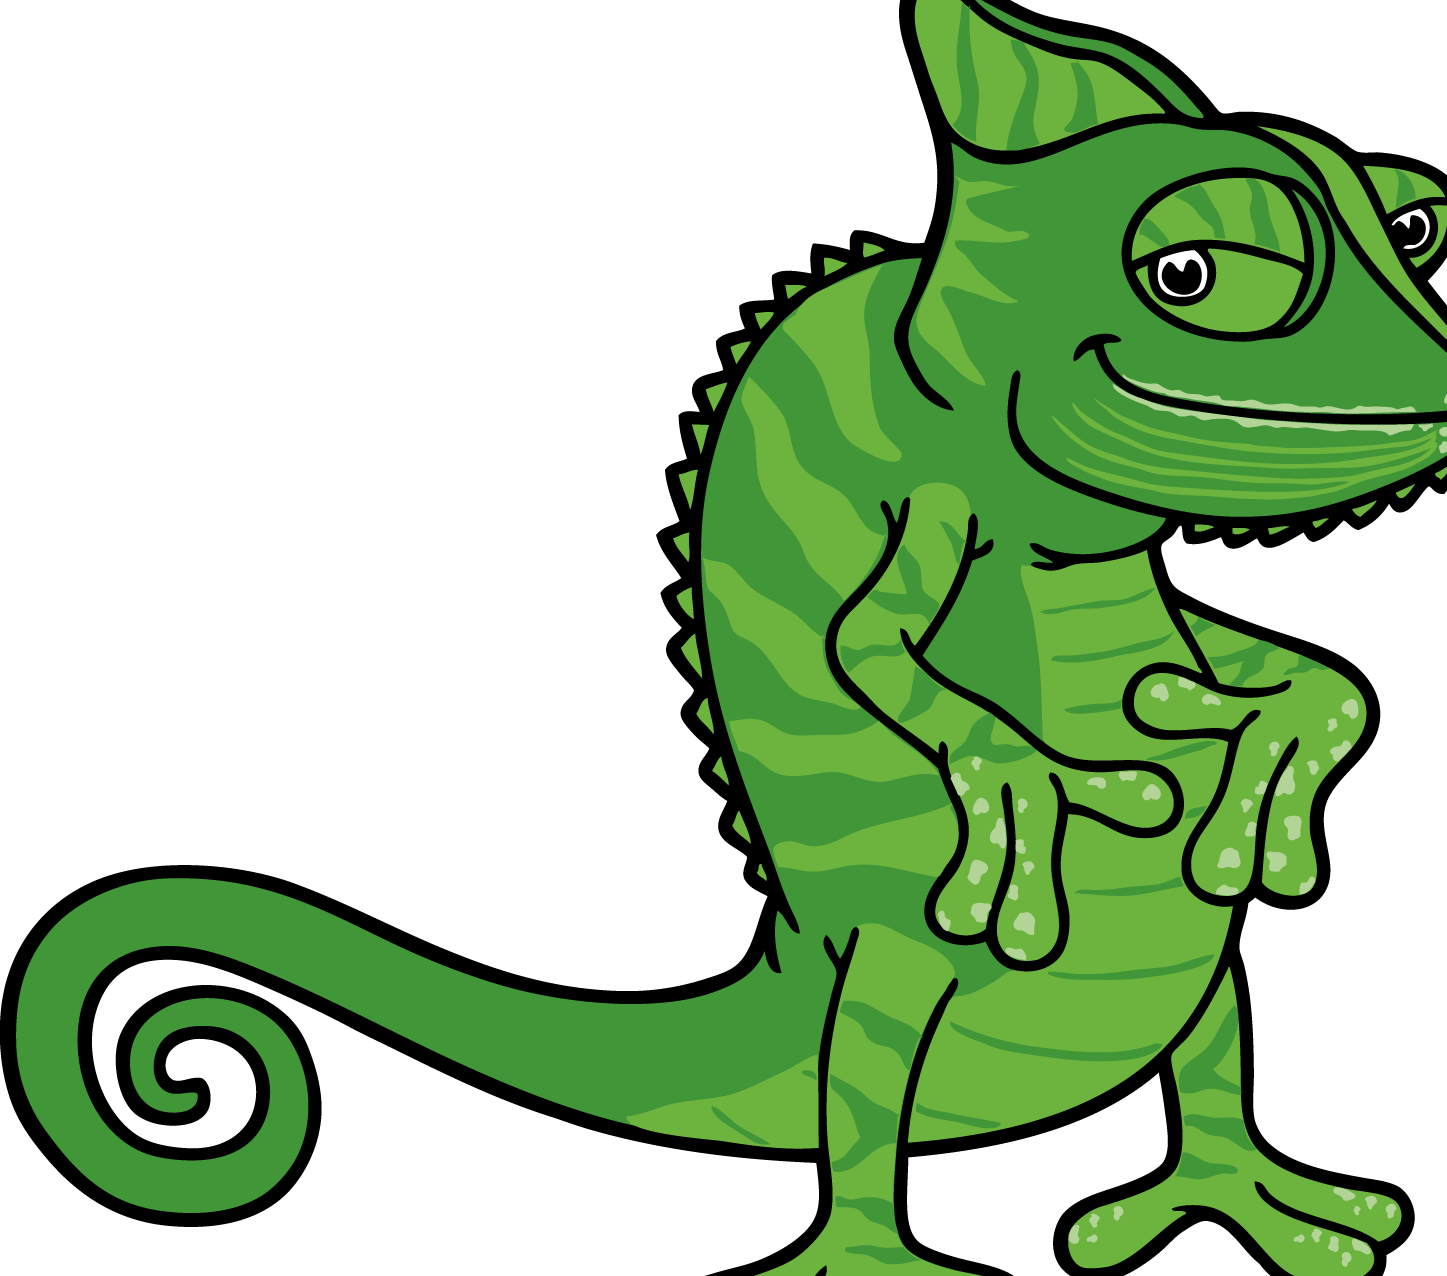 Be popular and get promoted – Corporate Chameleon